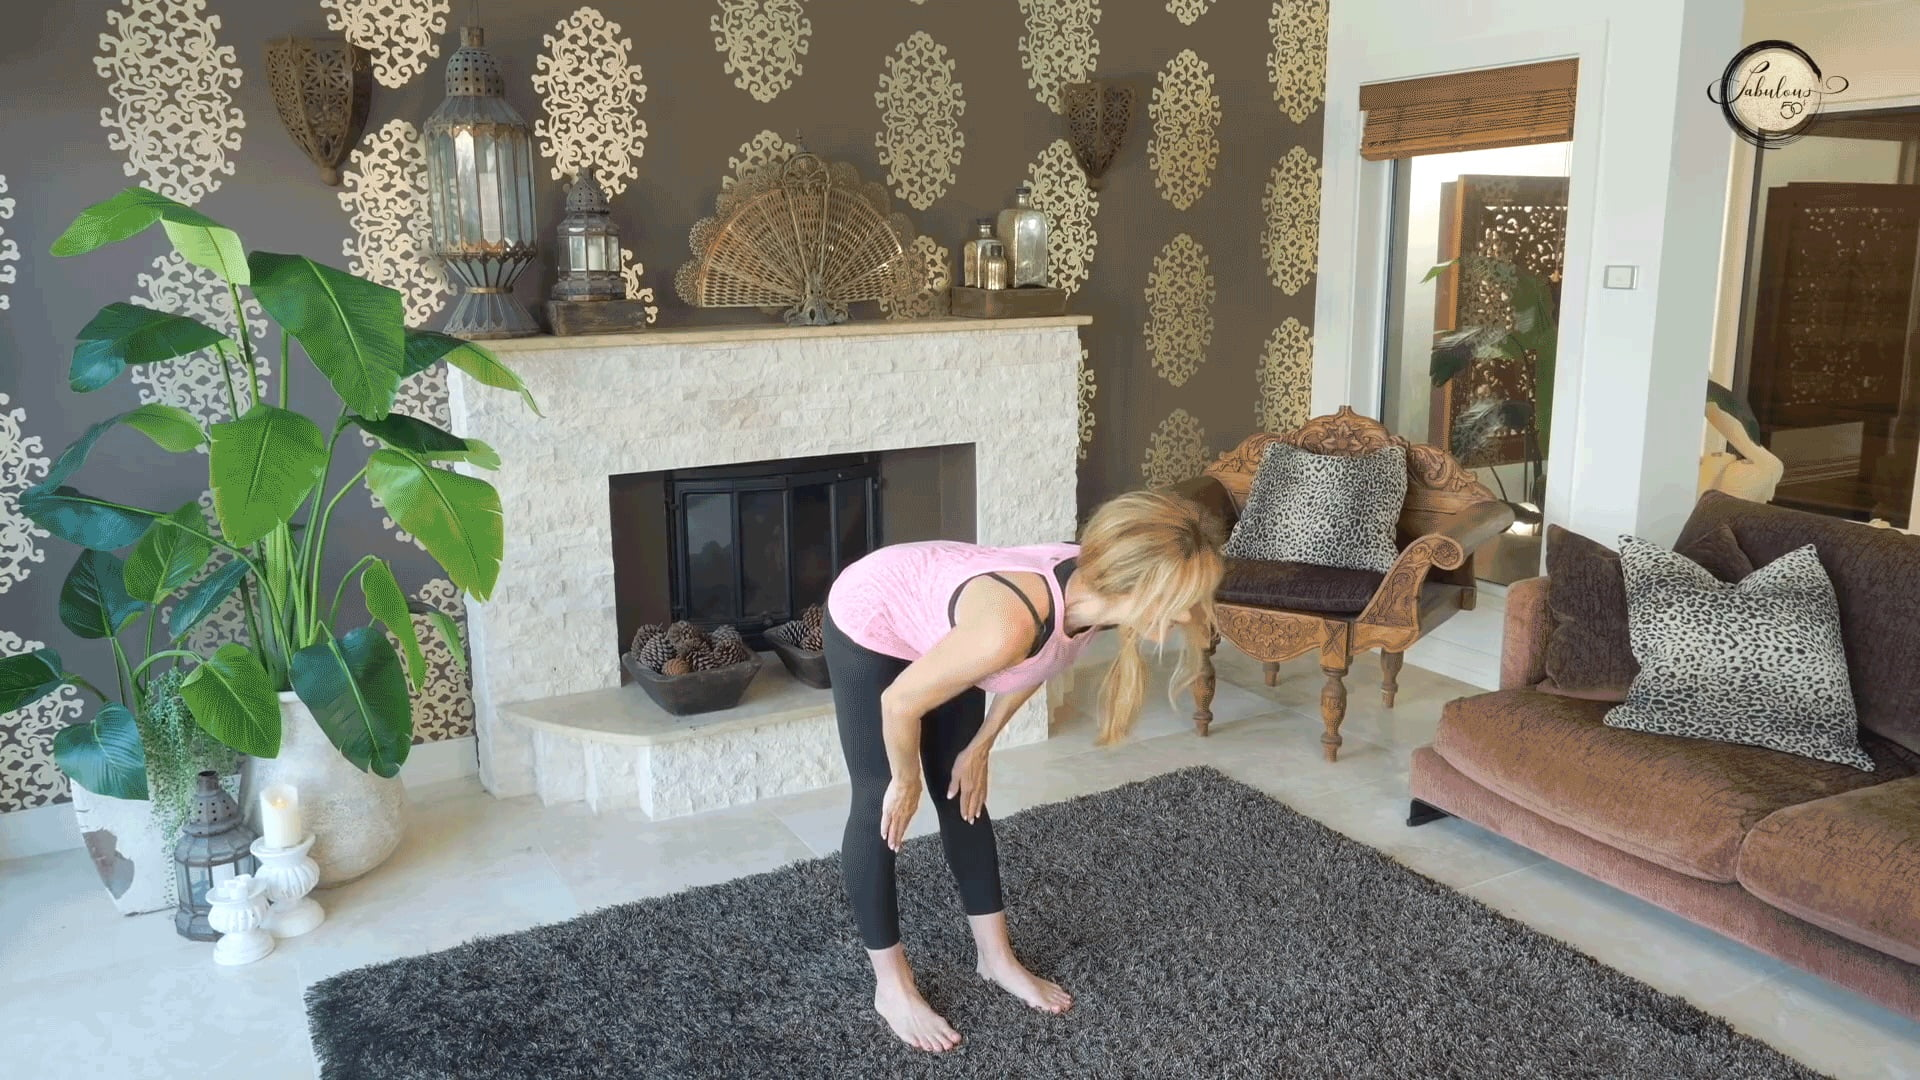 5 Minute Daily Stretch for Women Over 50